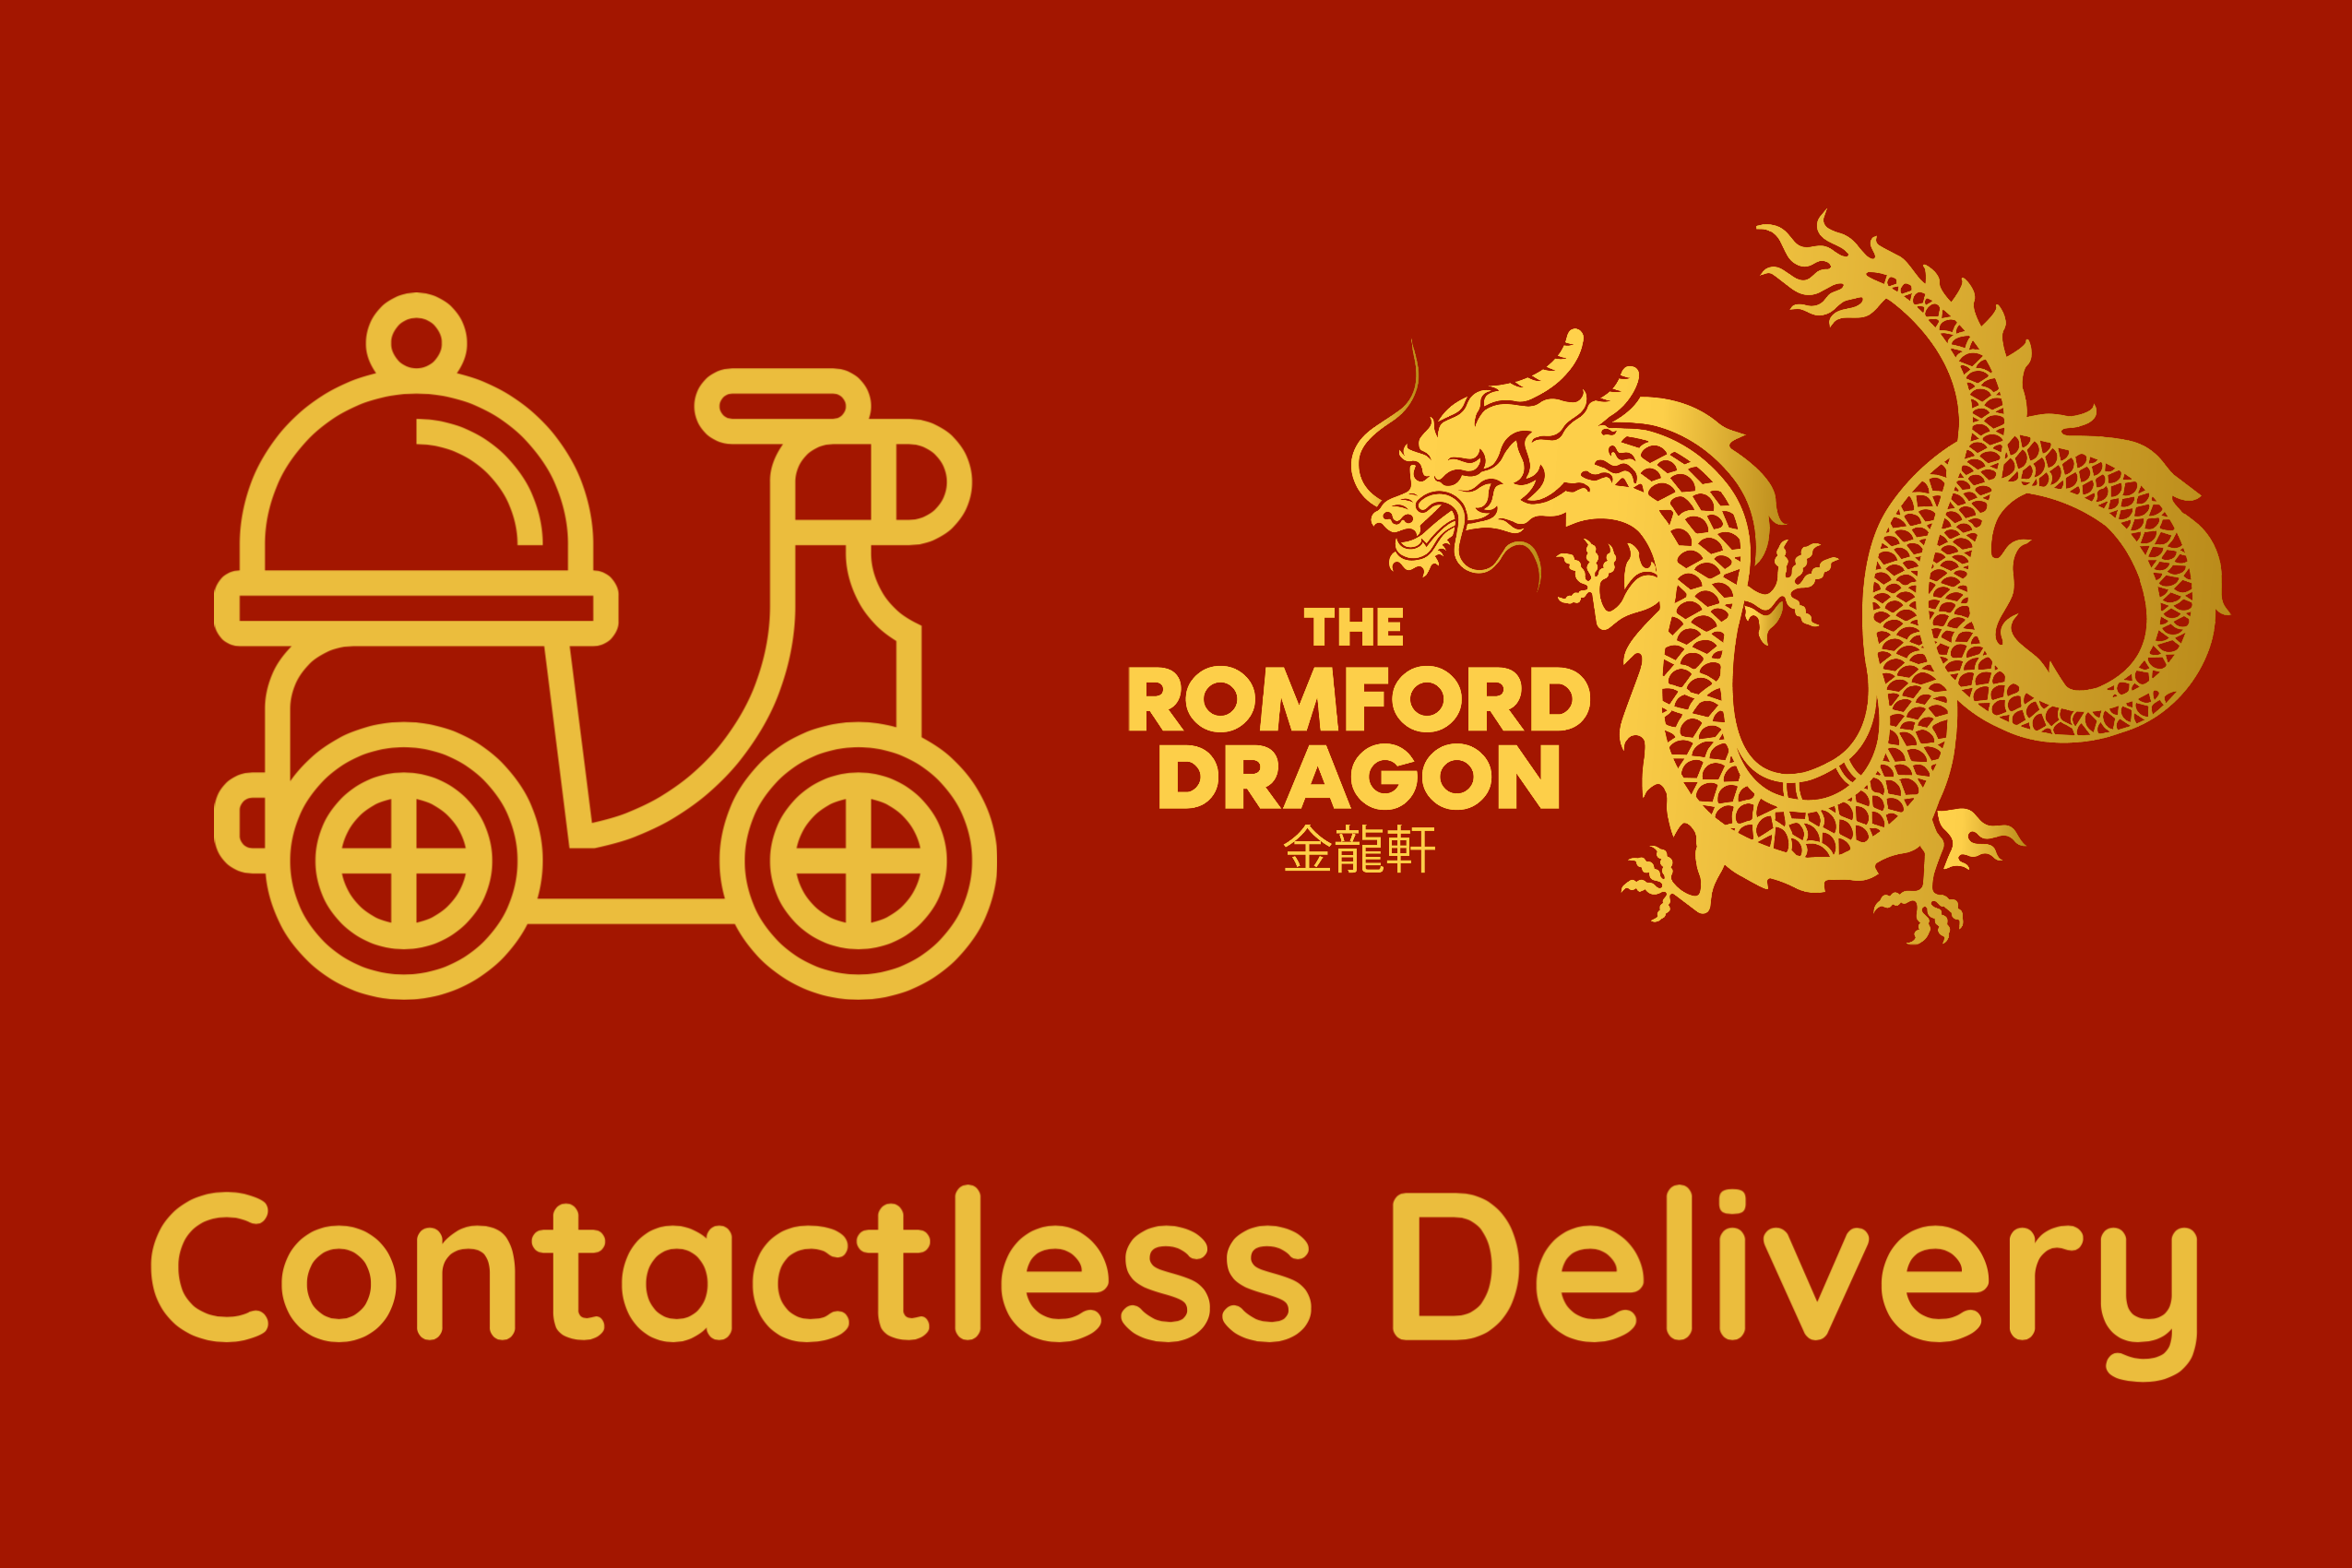 """contactless delivery"" icon of delivery scooter and dinner service on its seat, and romford dragon logo"